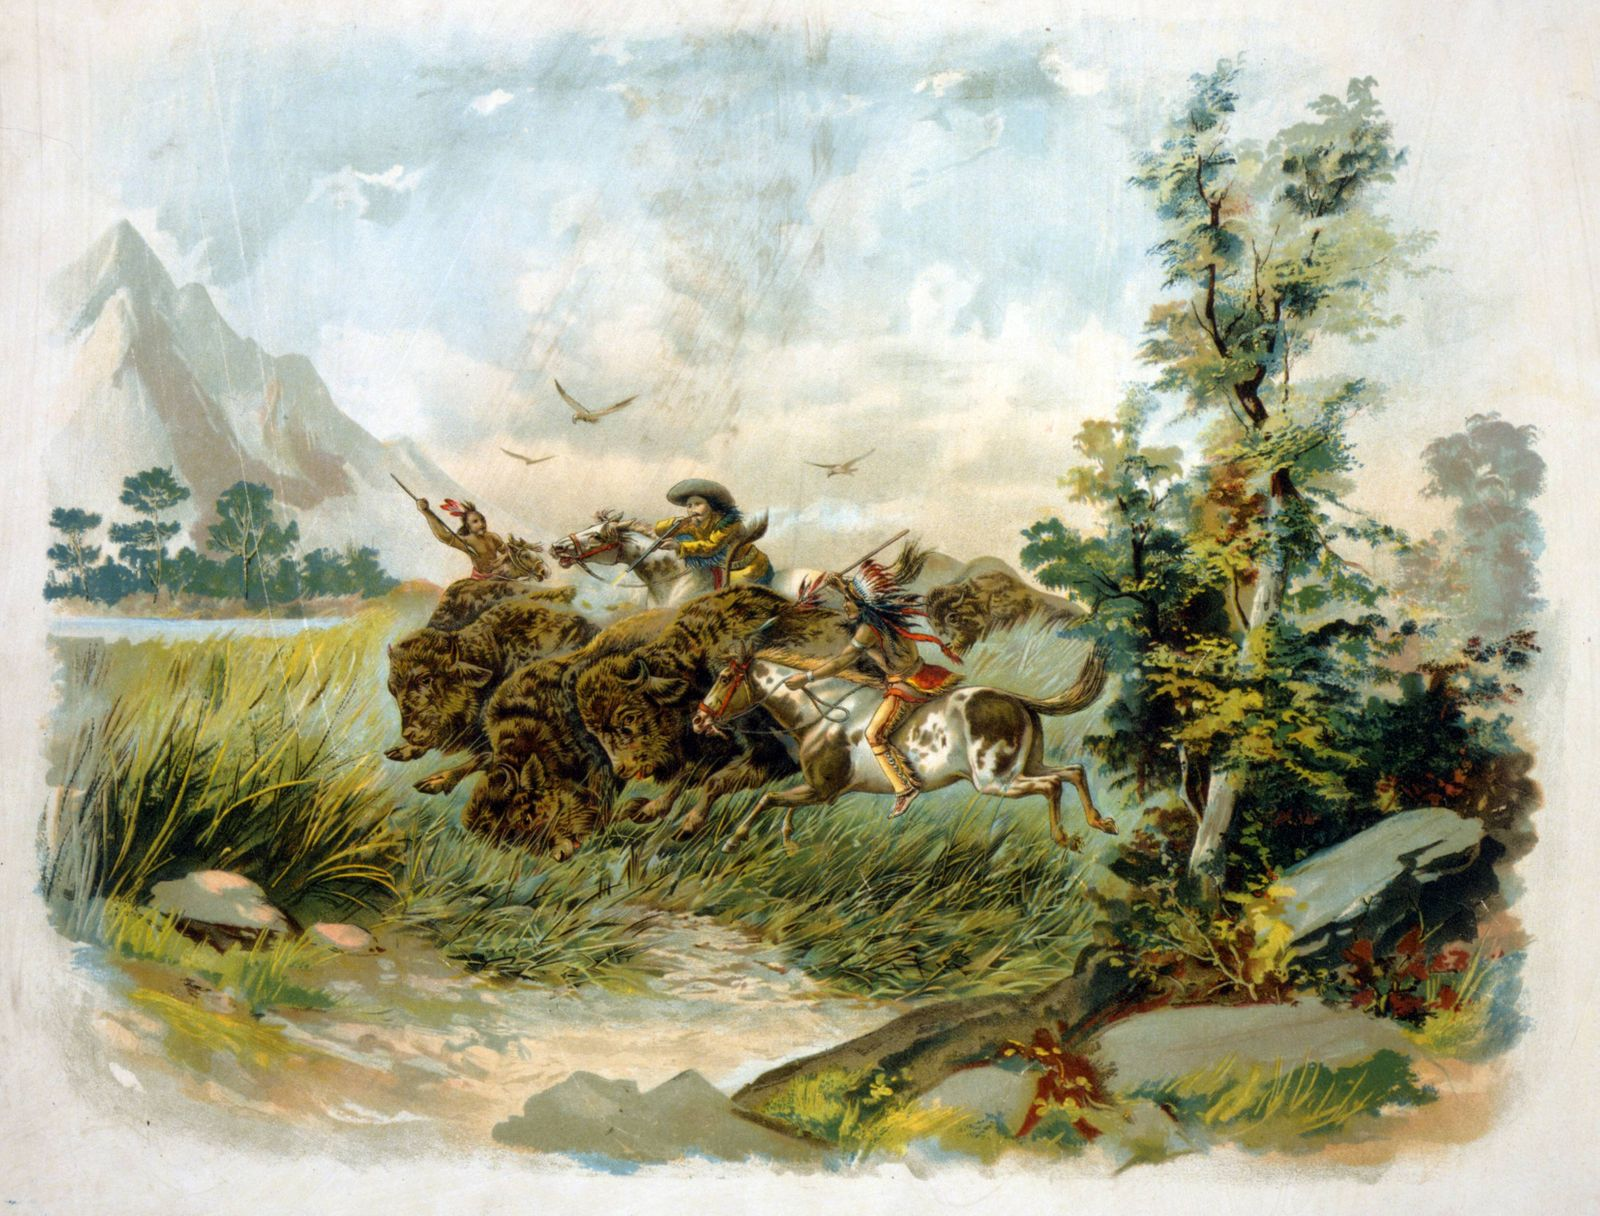 Buffalo hunt in the wild west Published 1897 A buffalo hunter shooting a buffalo as two Natives rid